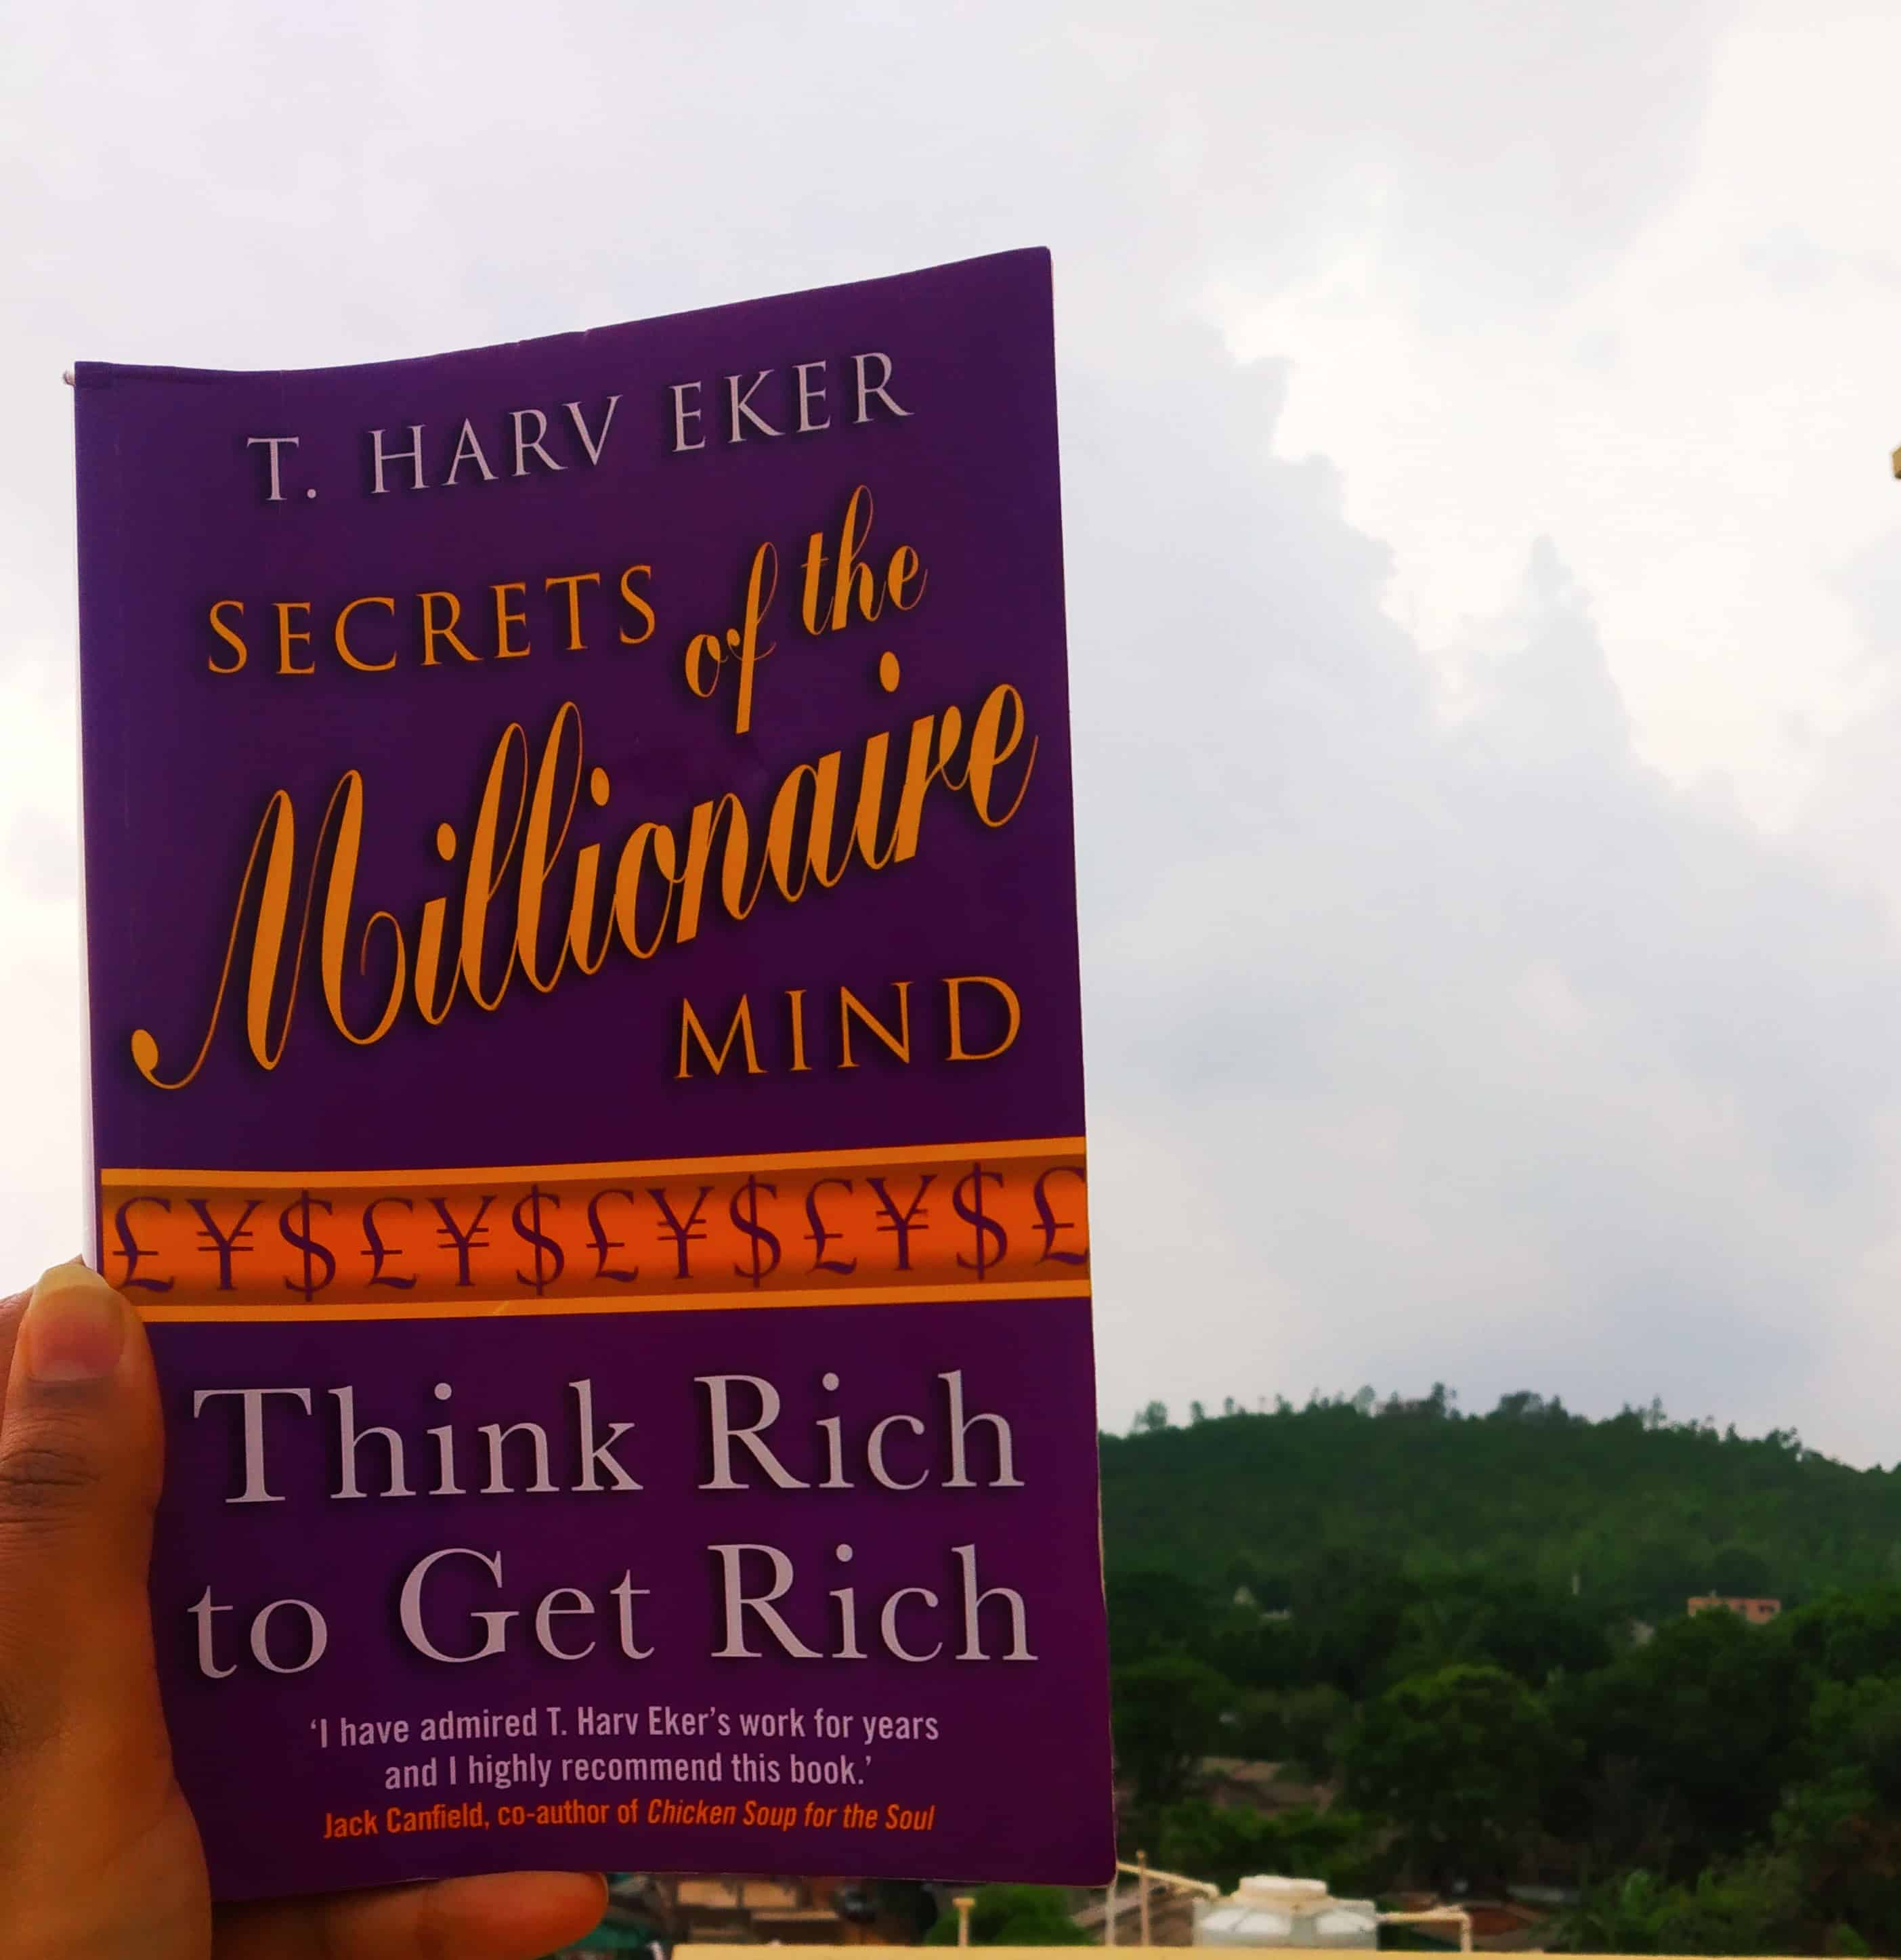 Multimillionaire mind - T. Harv Eker